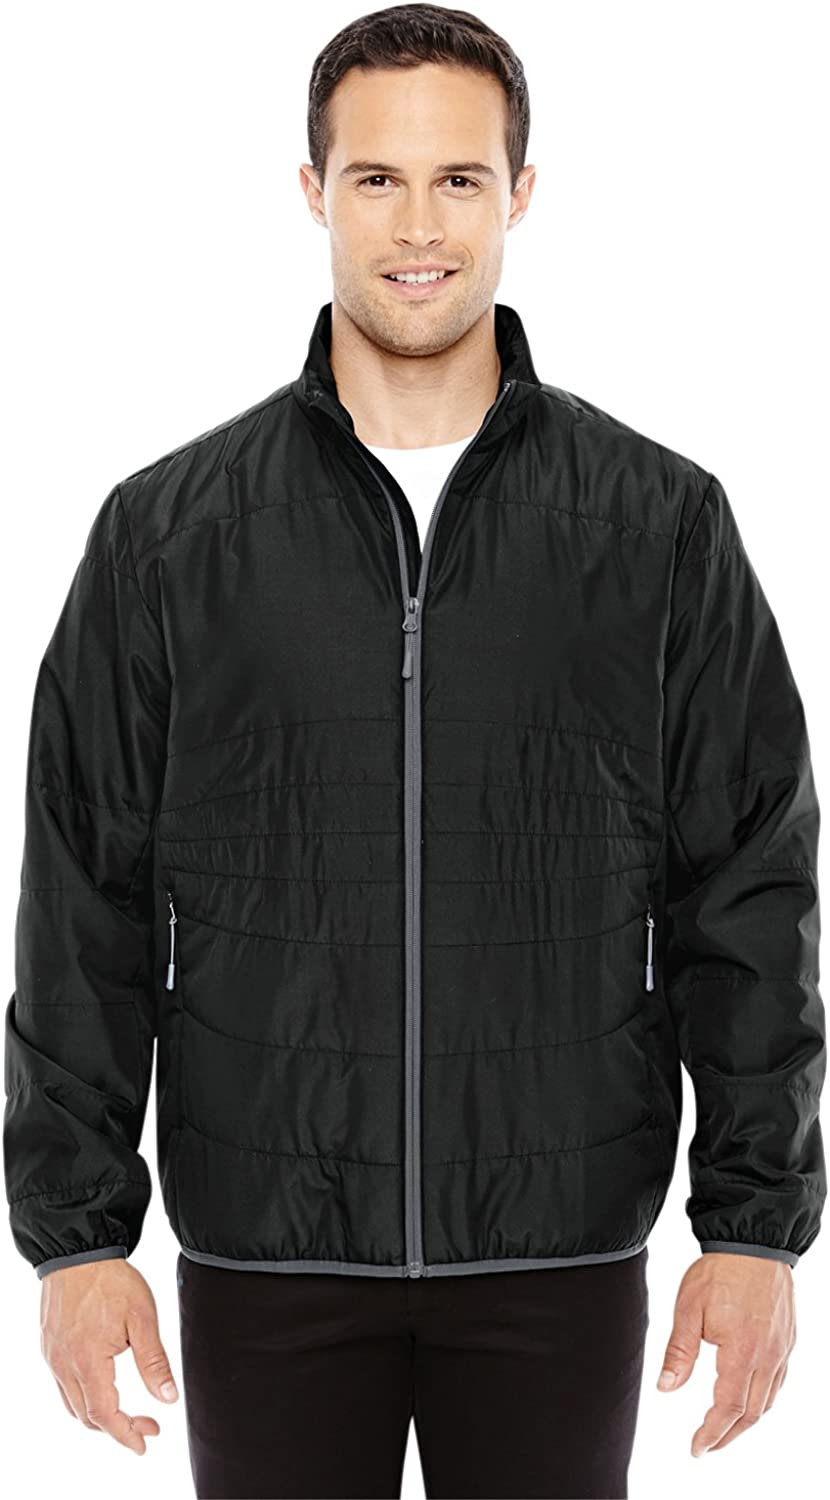 88231 Ash City North End Resolve Interactive Insulated Packable Jacket -BLCK// GRPHTE -3XL